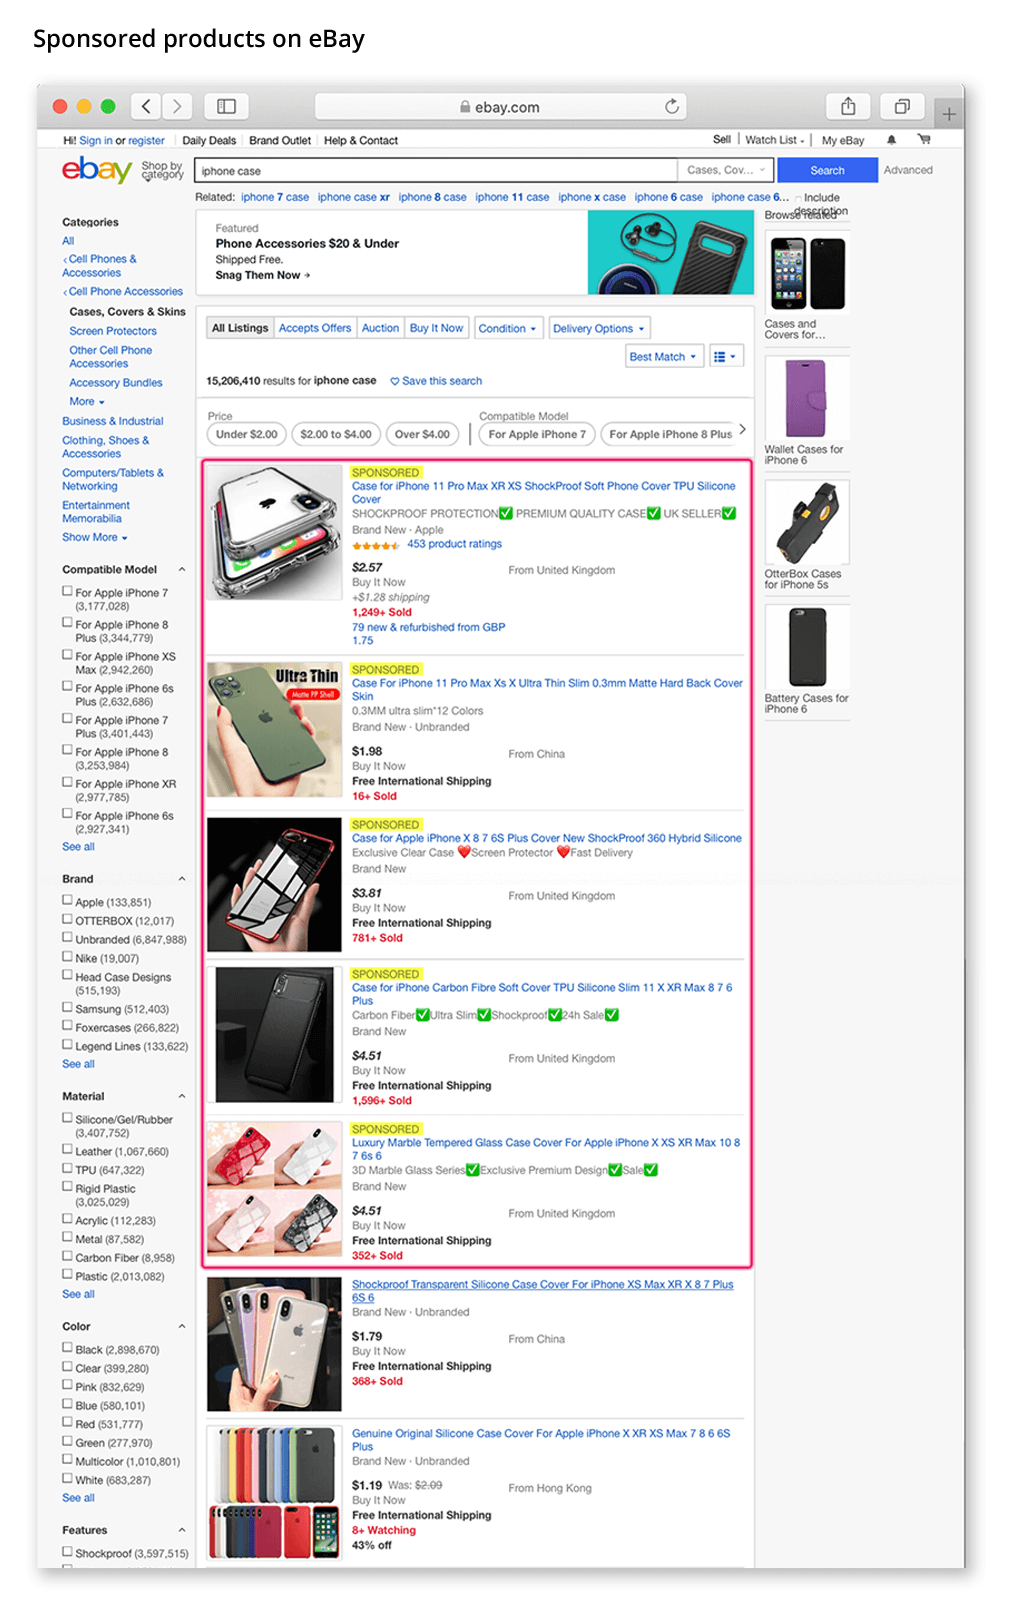 ecommerce ebay sponsored products